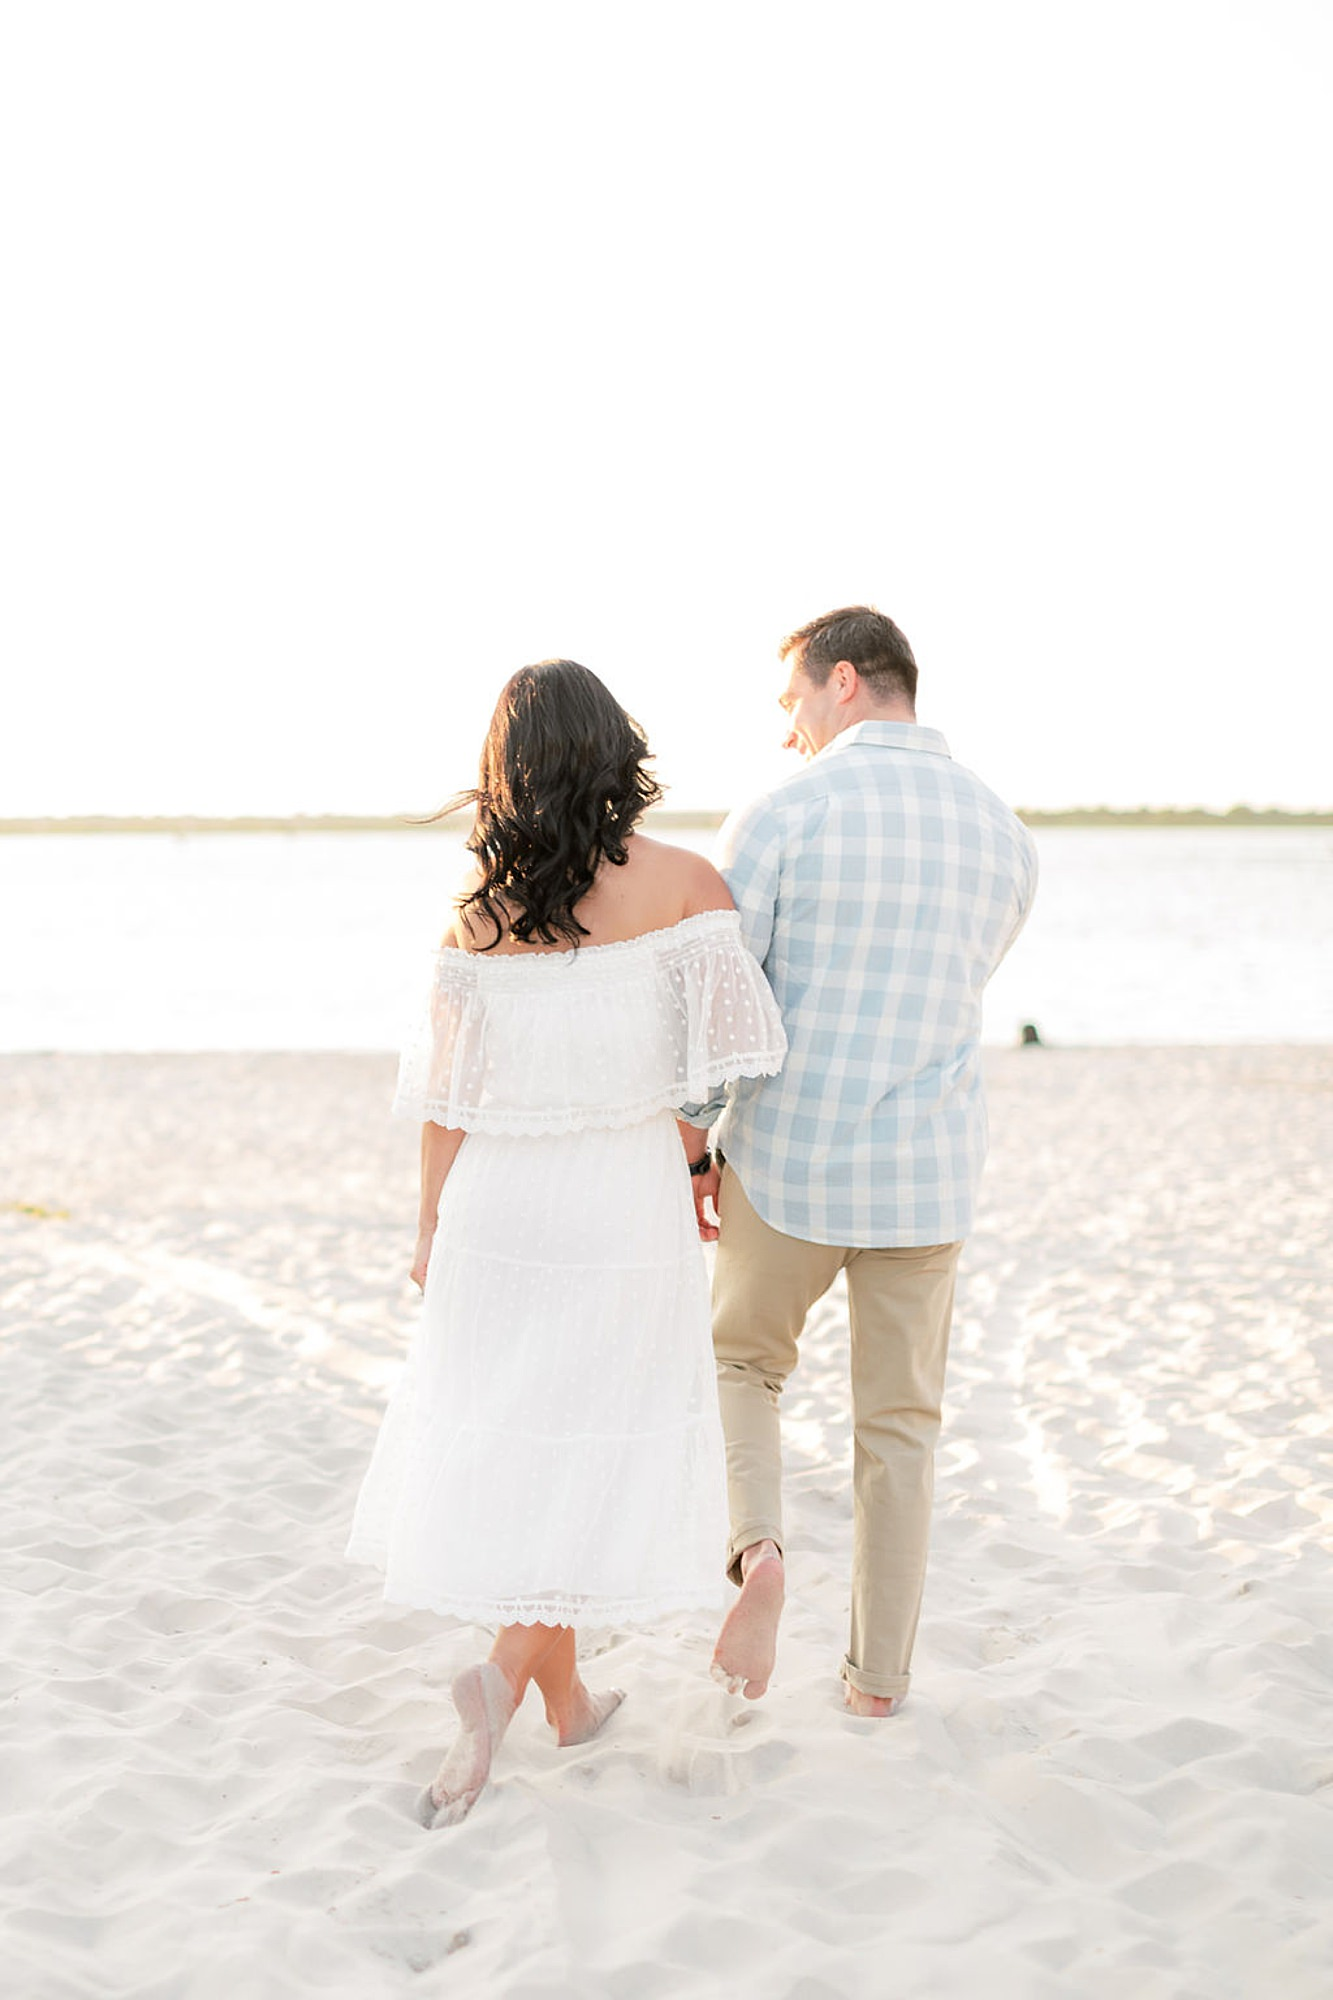 Airy and Bright Engagement Photography in Ocean City NJ by Magdalena Studios 0023